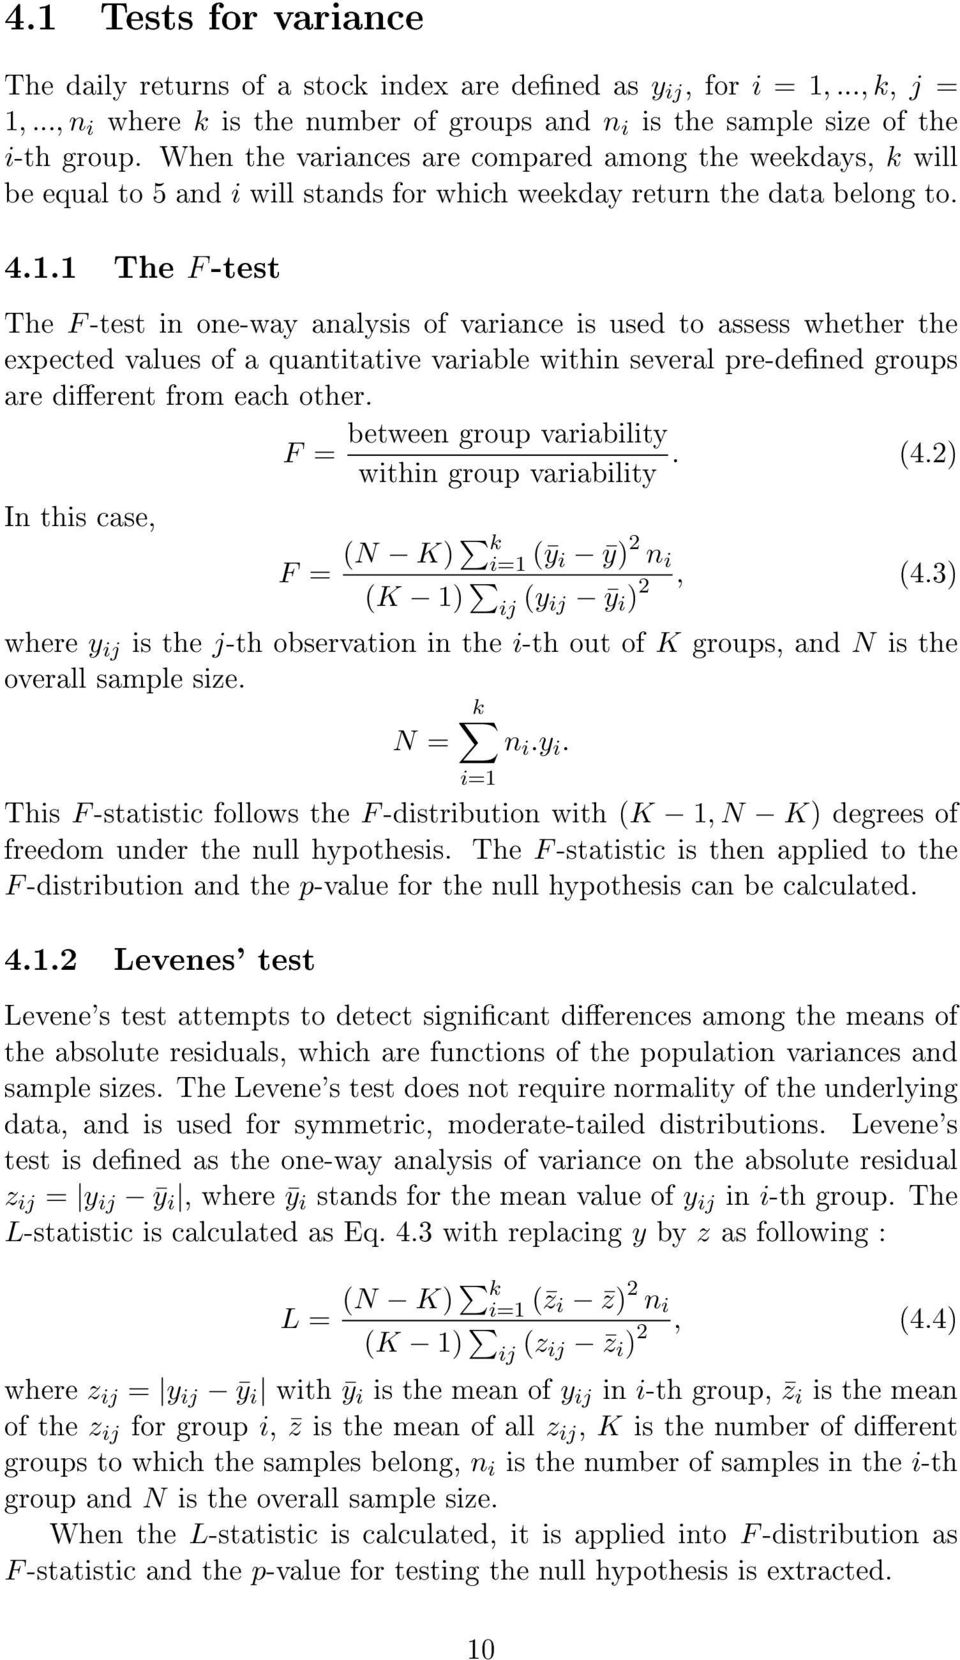 1 The F -test The F -test in one-way analysis of variance is used to assess whether the expected values of a quantitative variable within several pre-dened groups are dierent from each other.